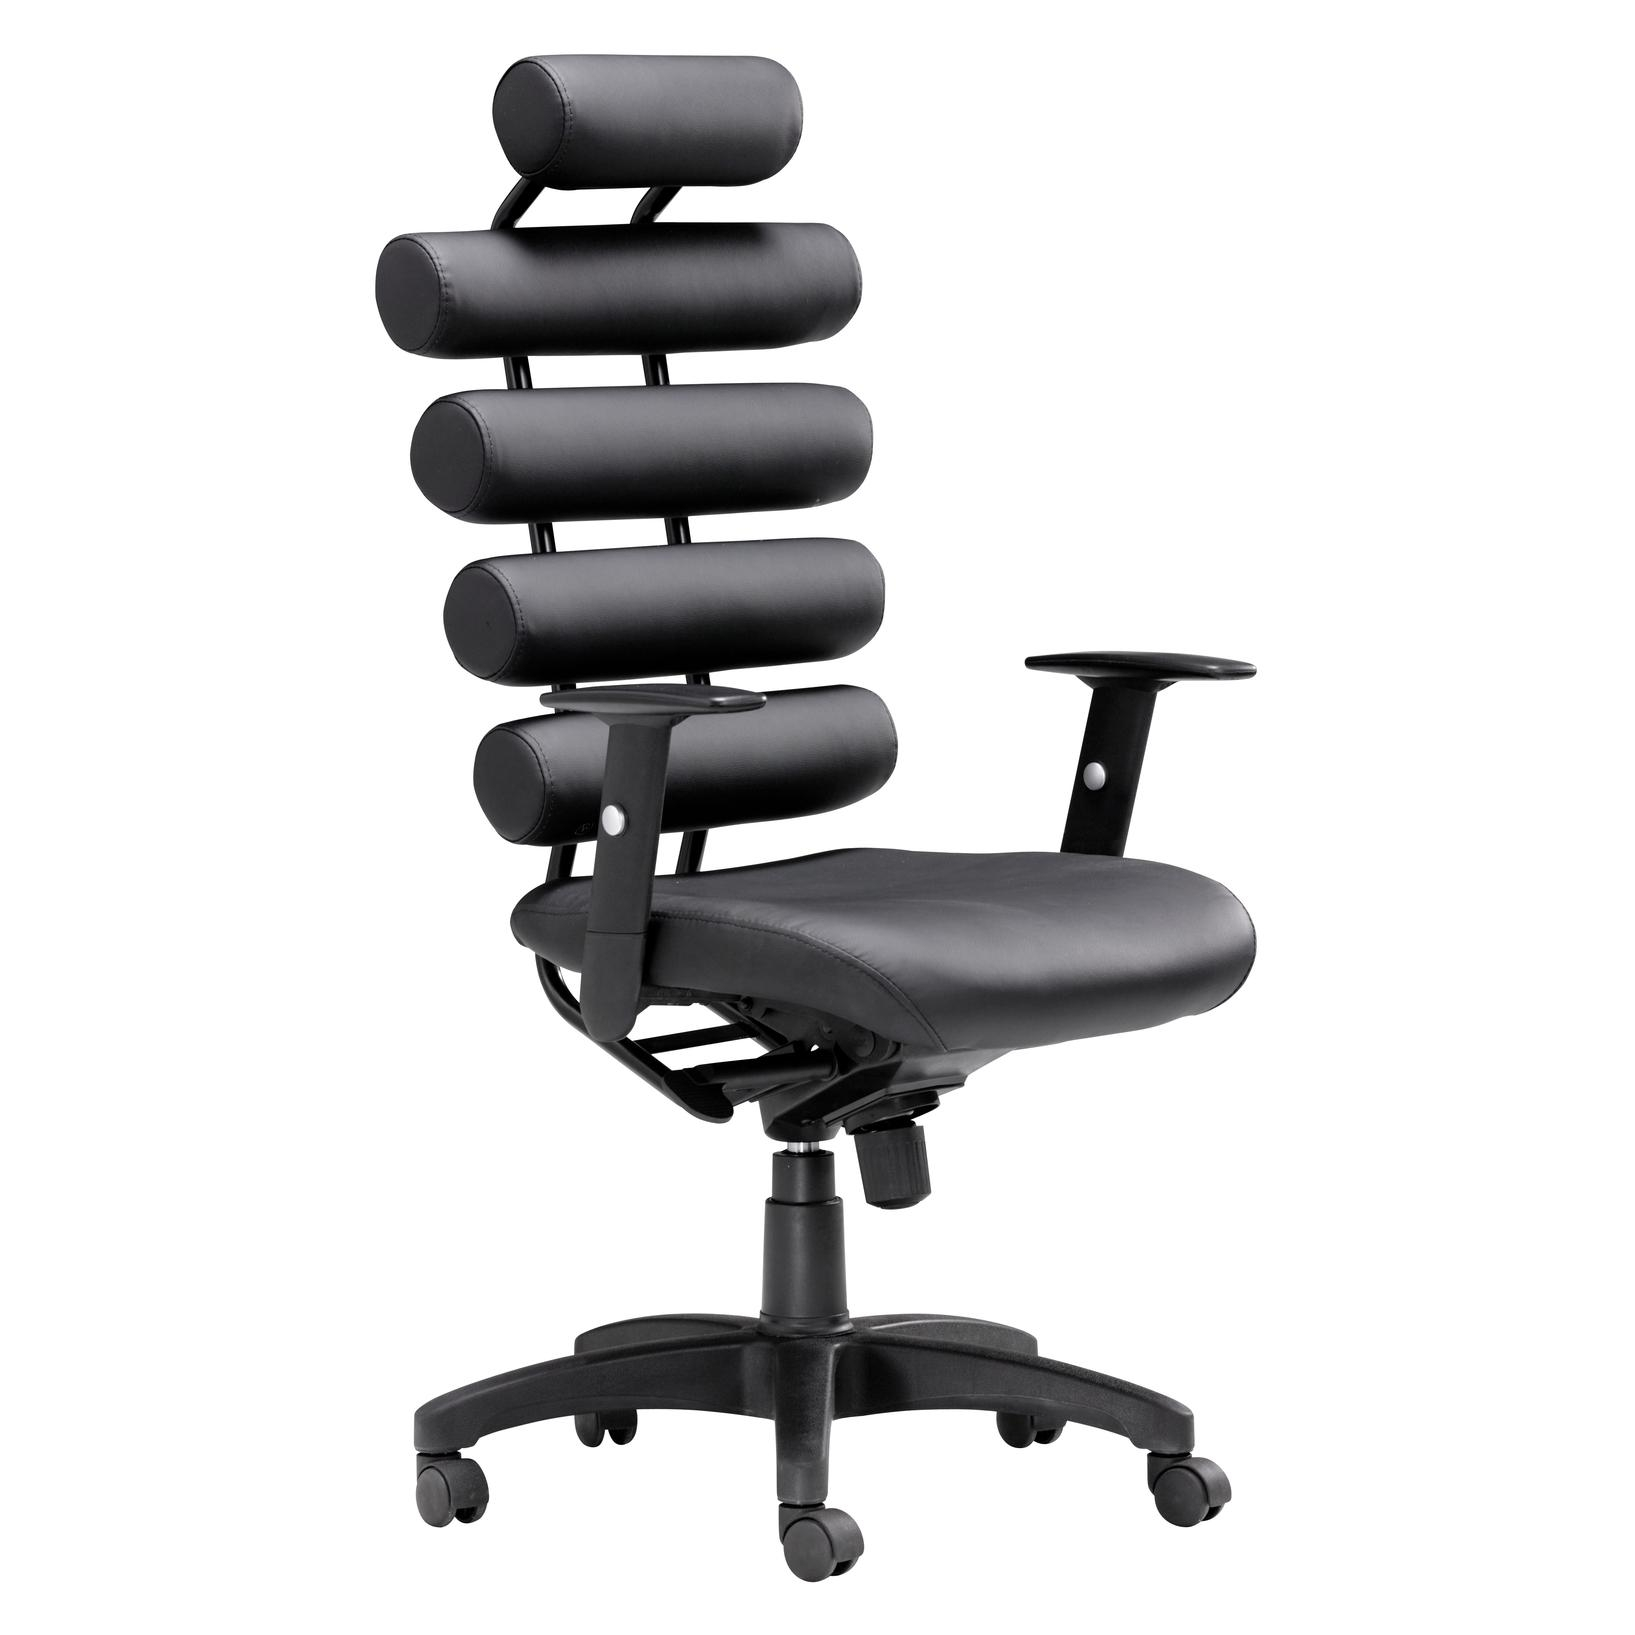 Charmant Ergonomic Chair For Home